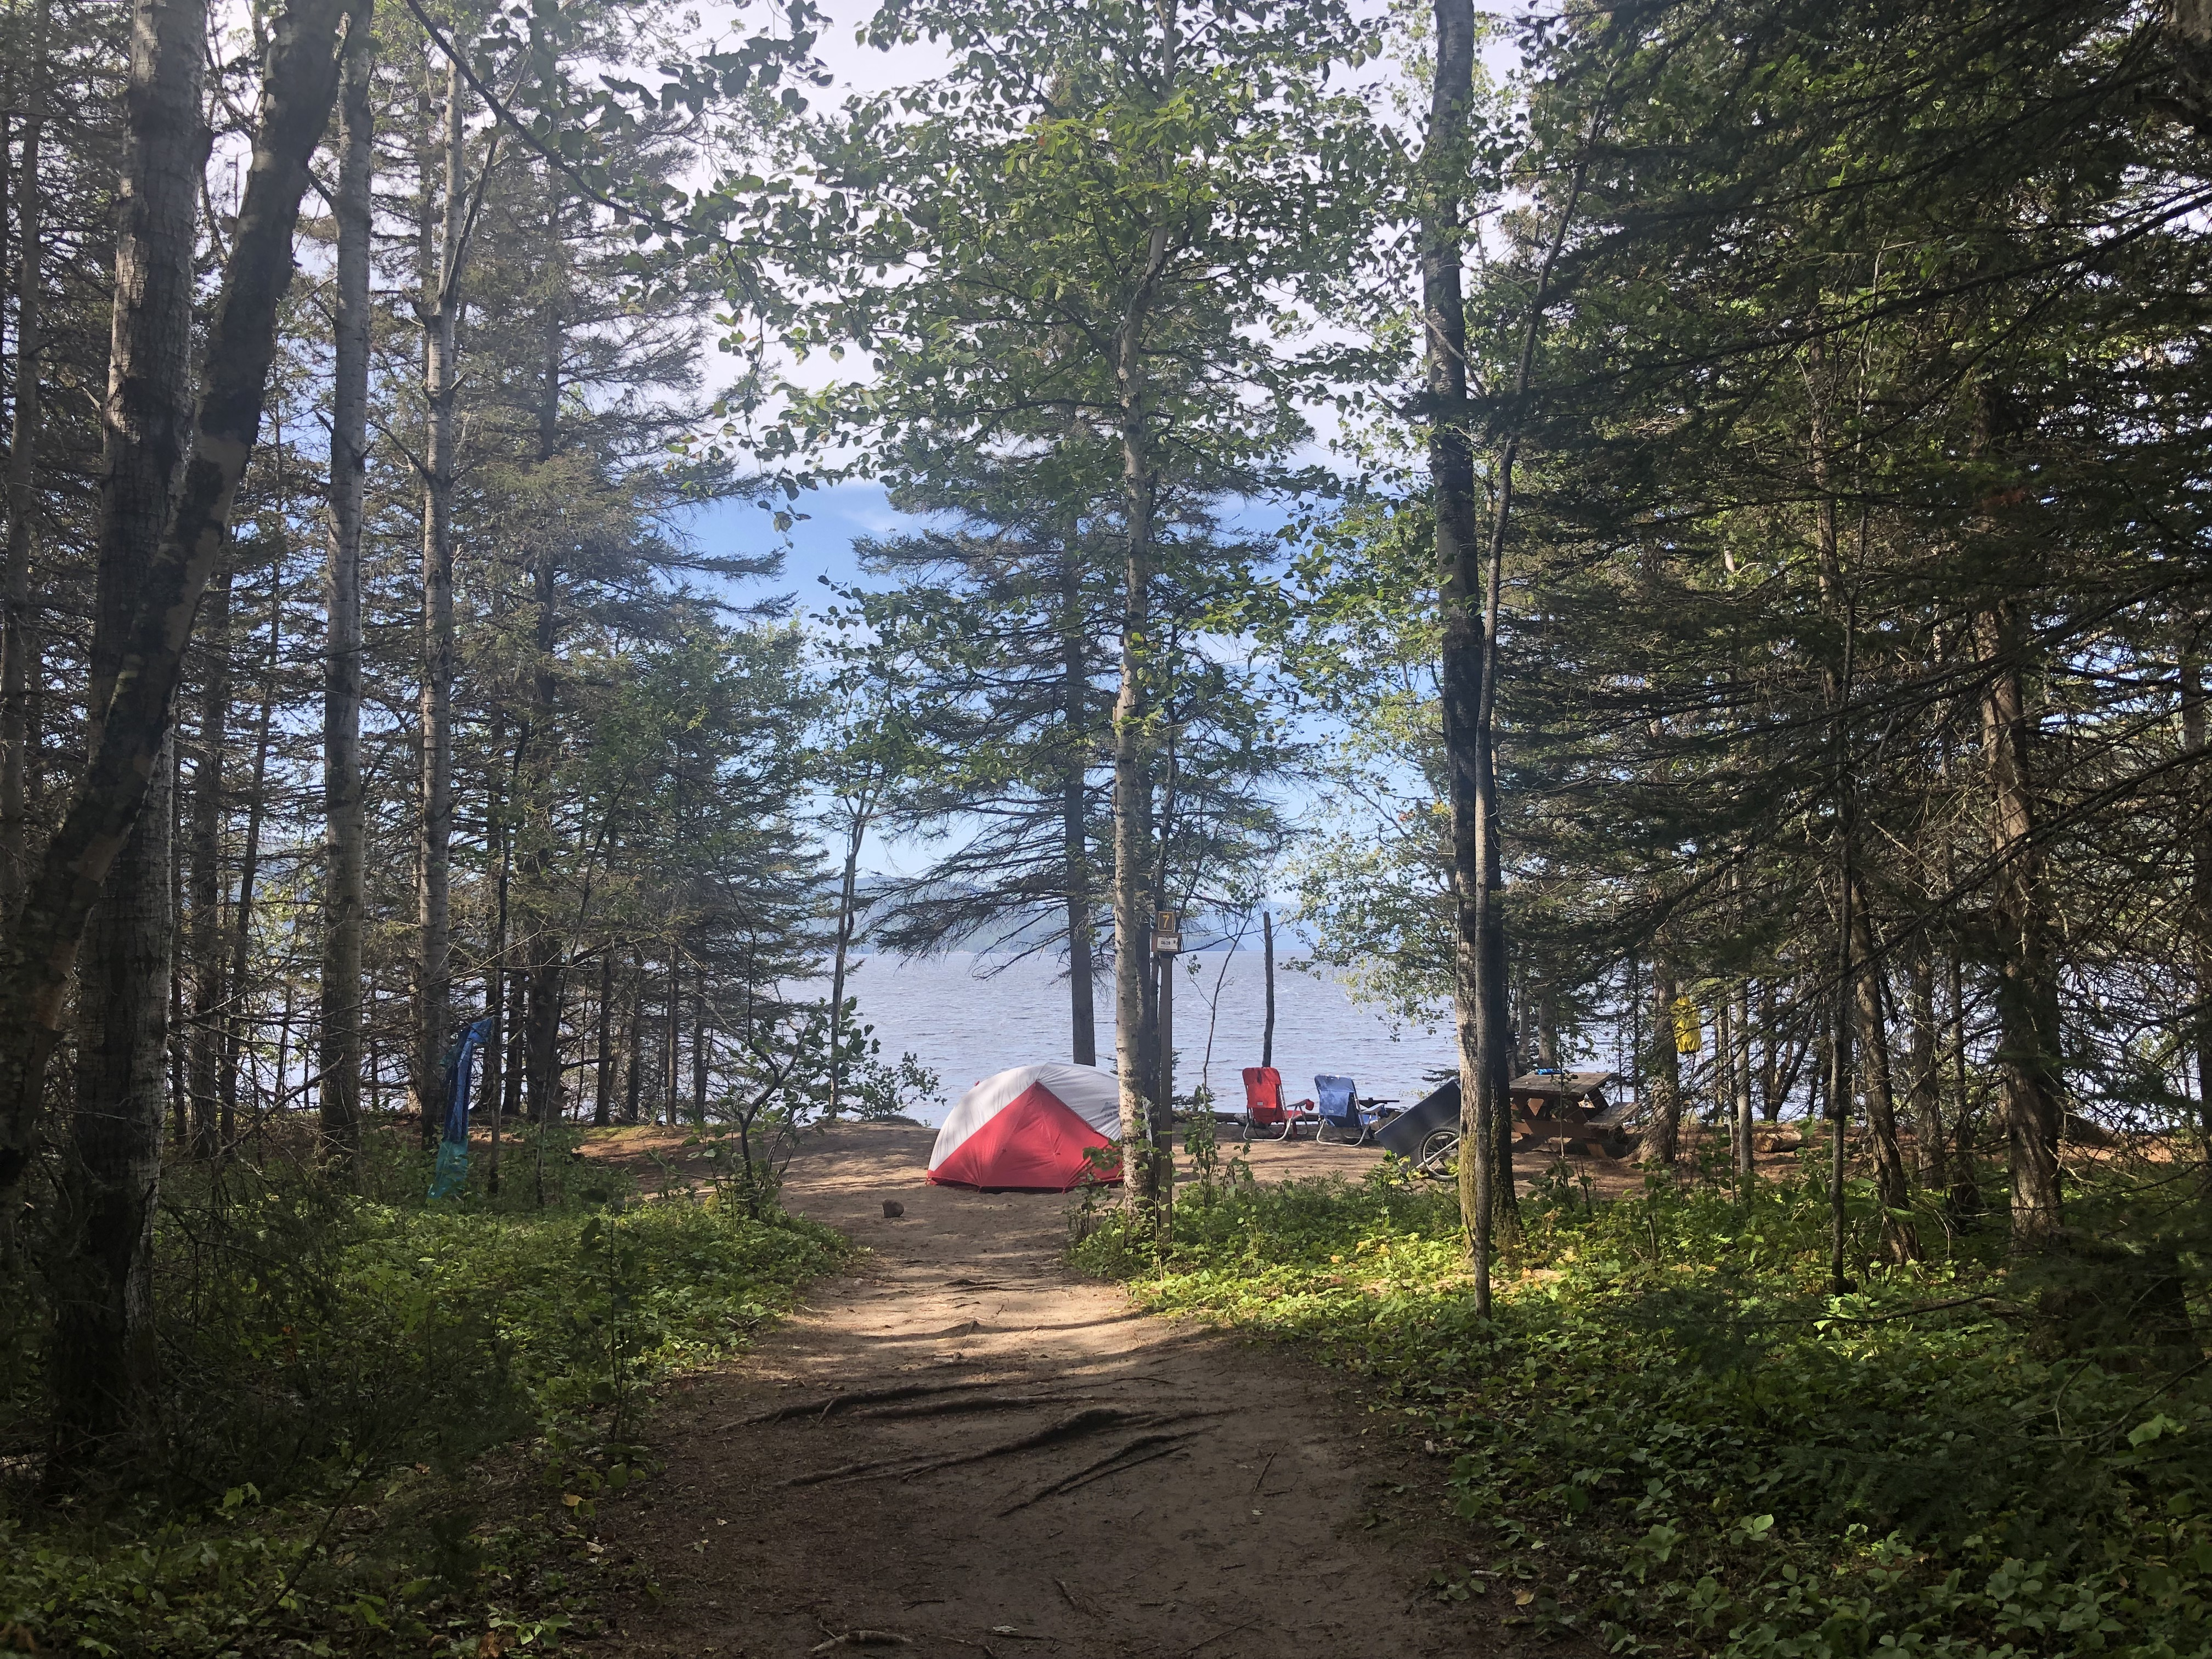 Camping in saguenay quebec.